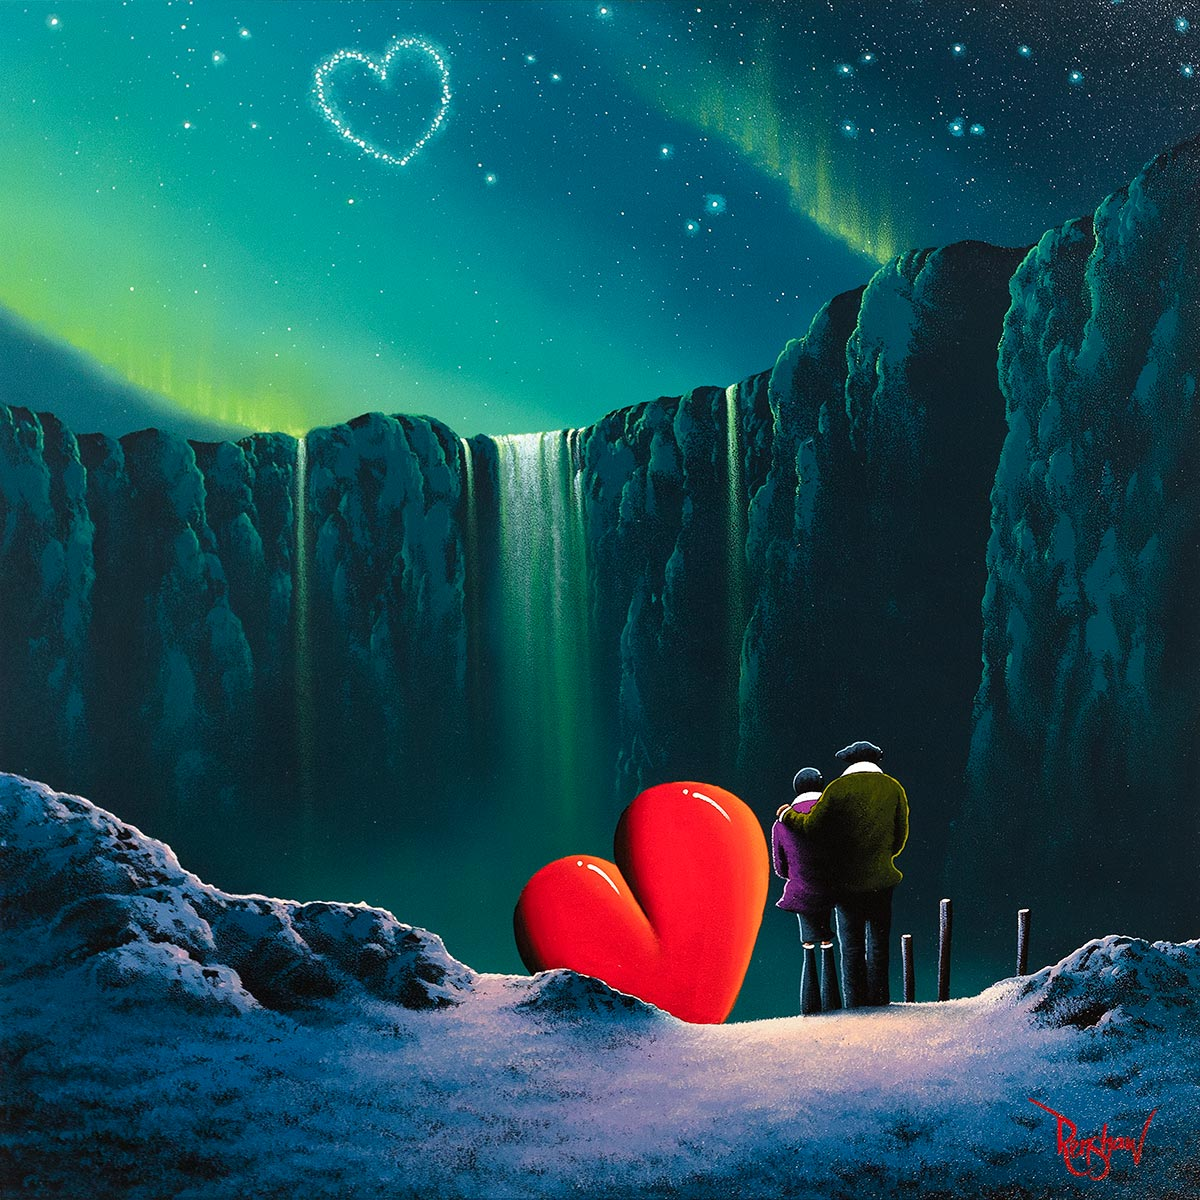 Under the Stars - Original David Renshaw Framed